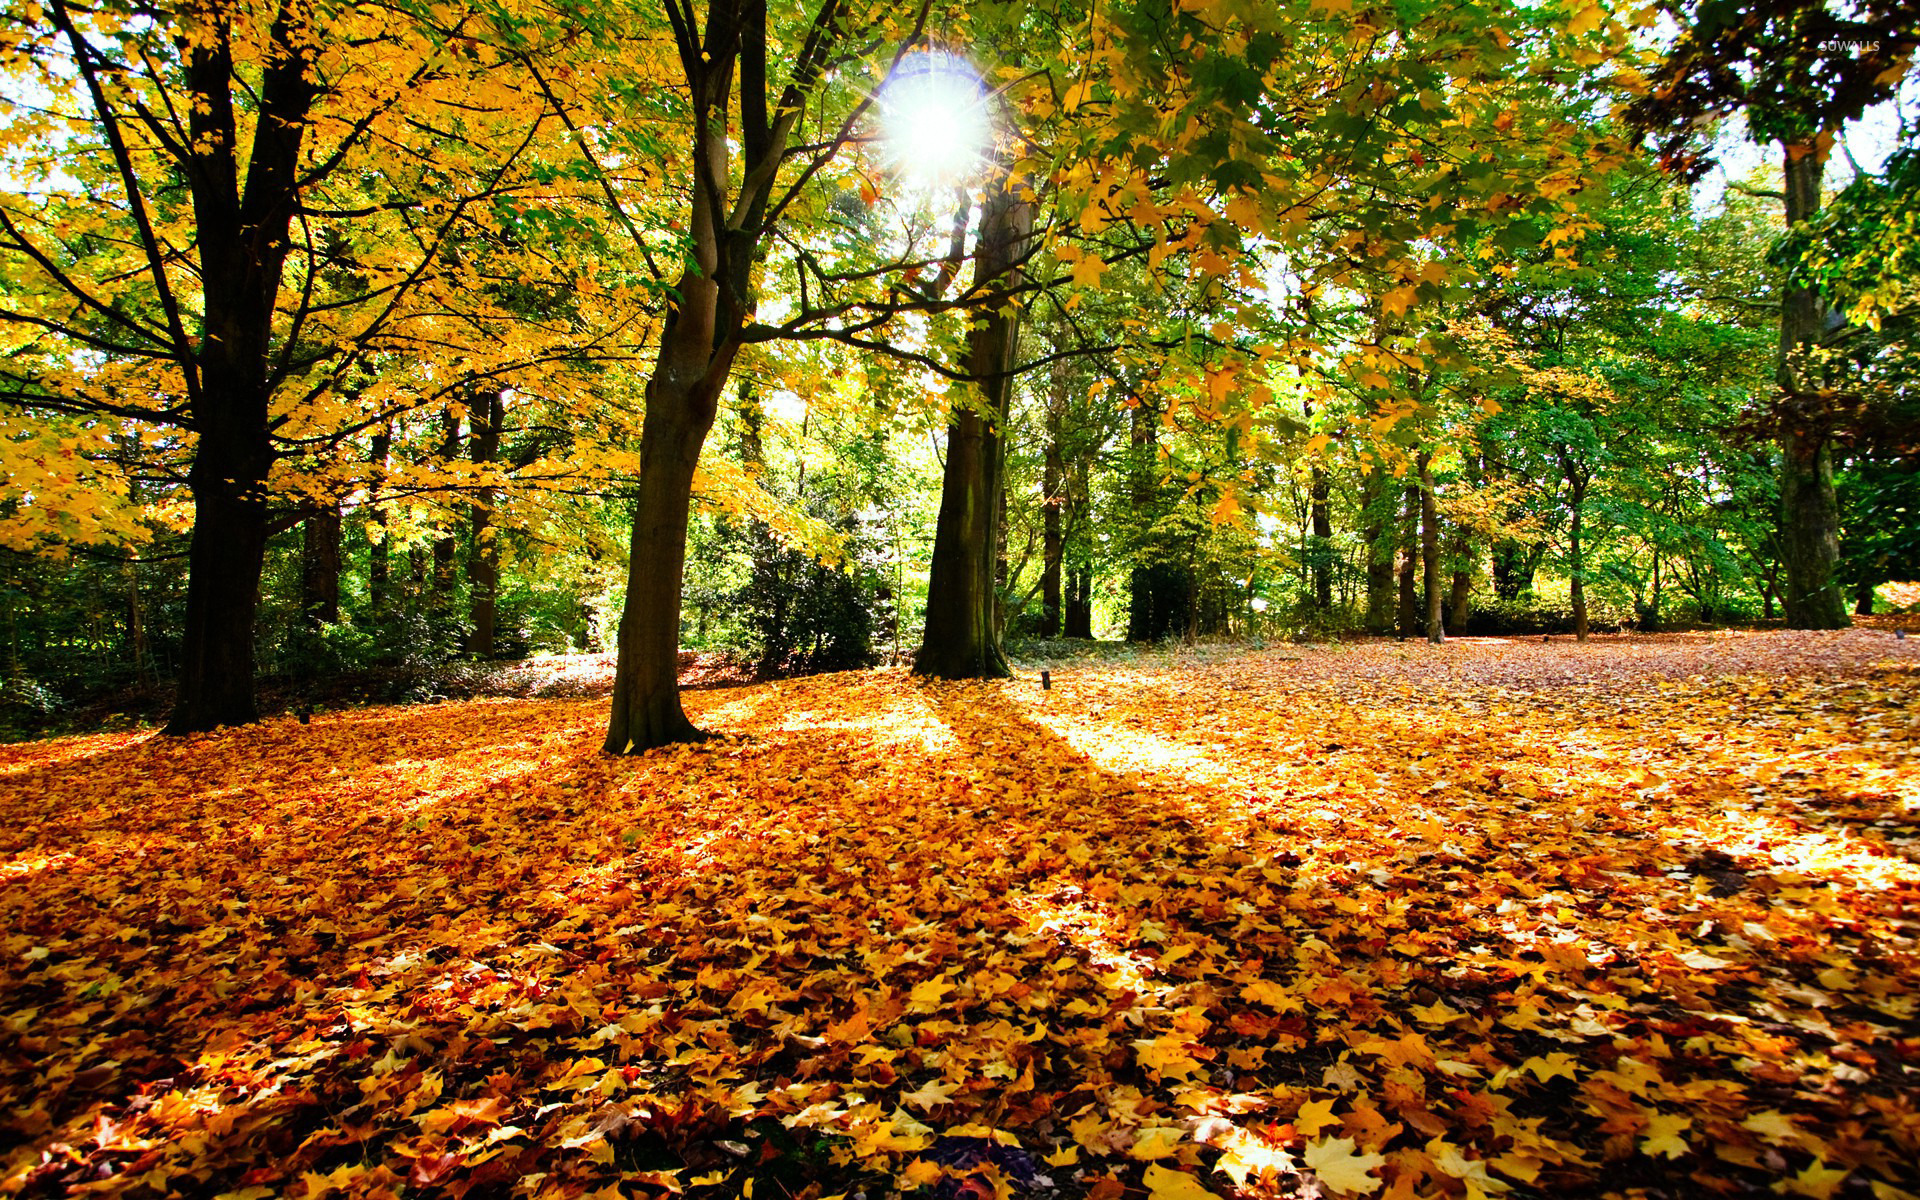 Autumn in the forest wallpaper - Nature wallpapers - #15554